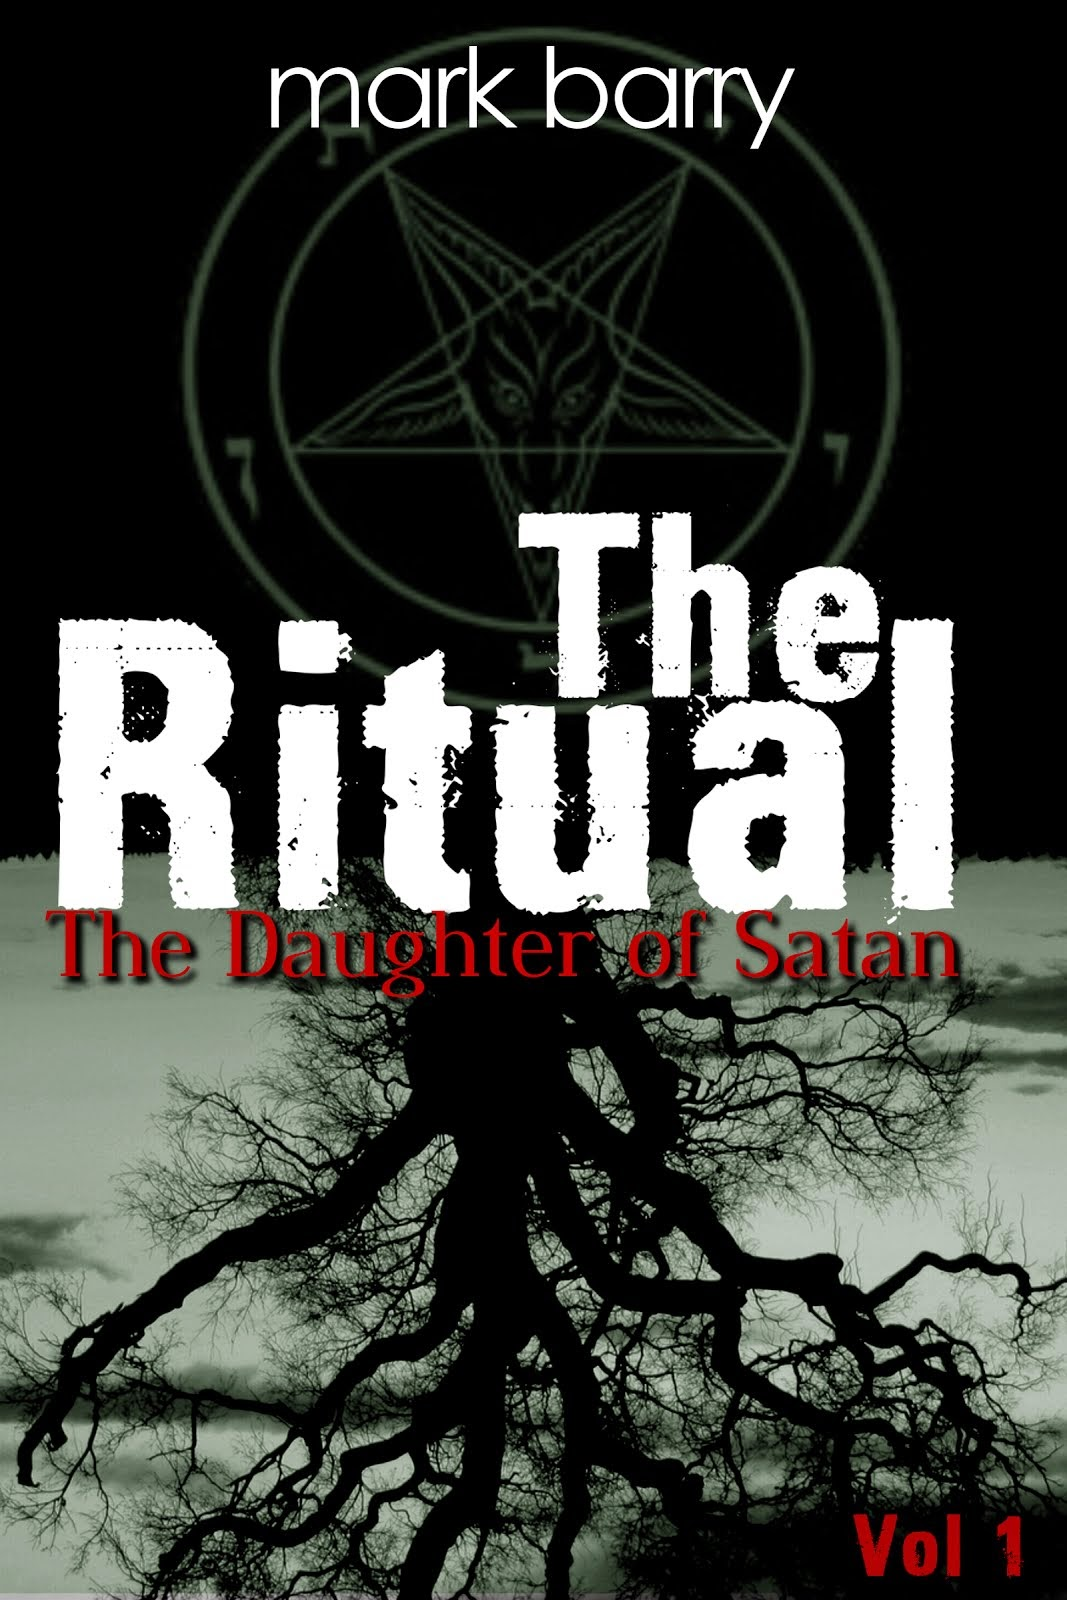 Horror thriller fan? Try a FREE PDF download